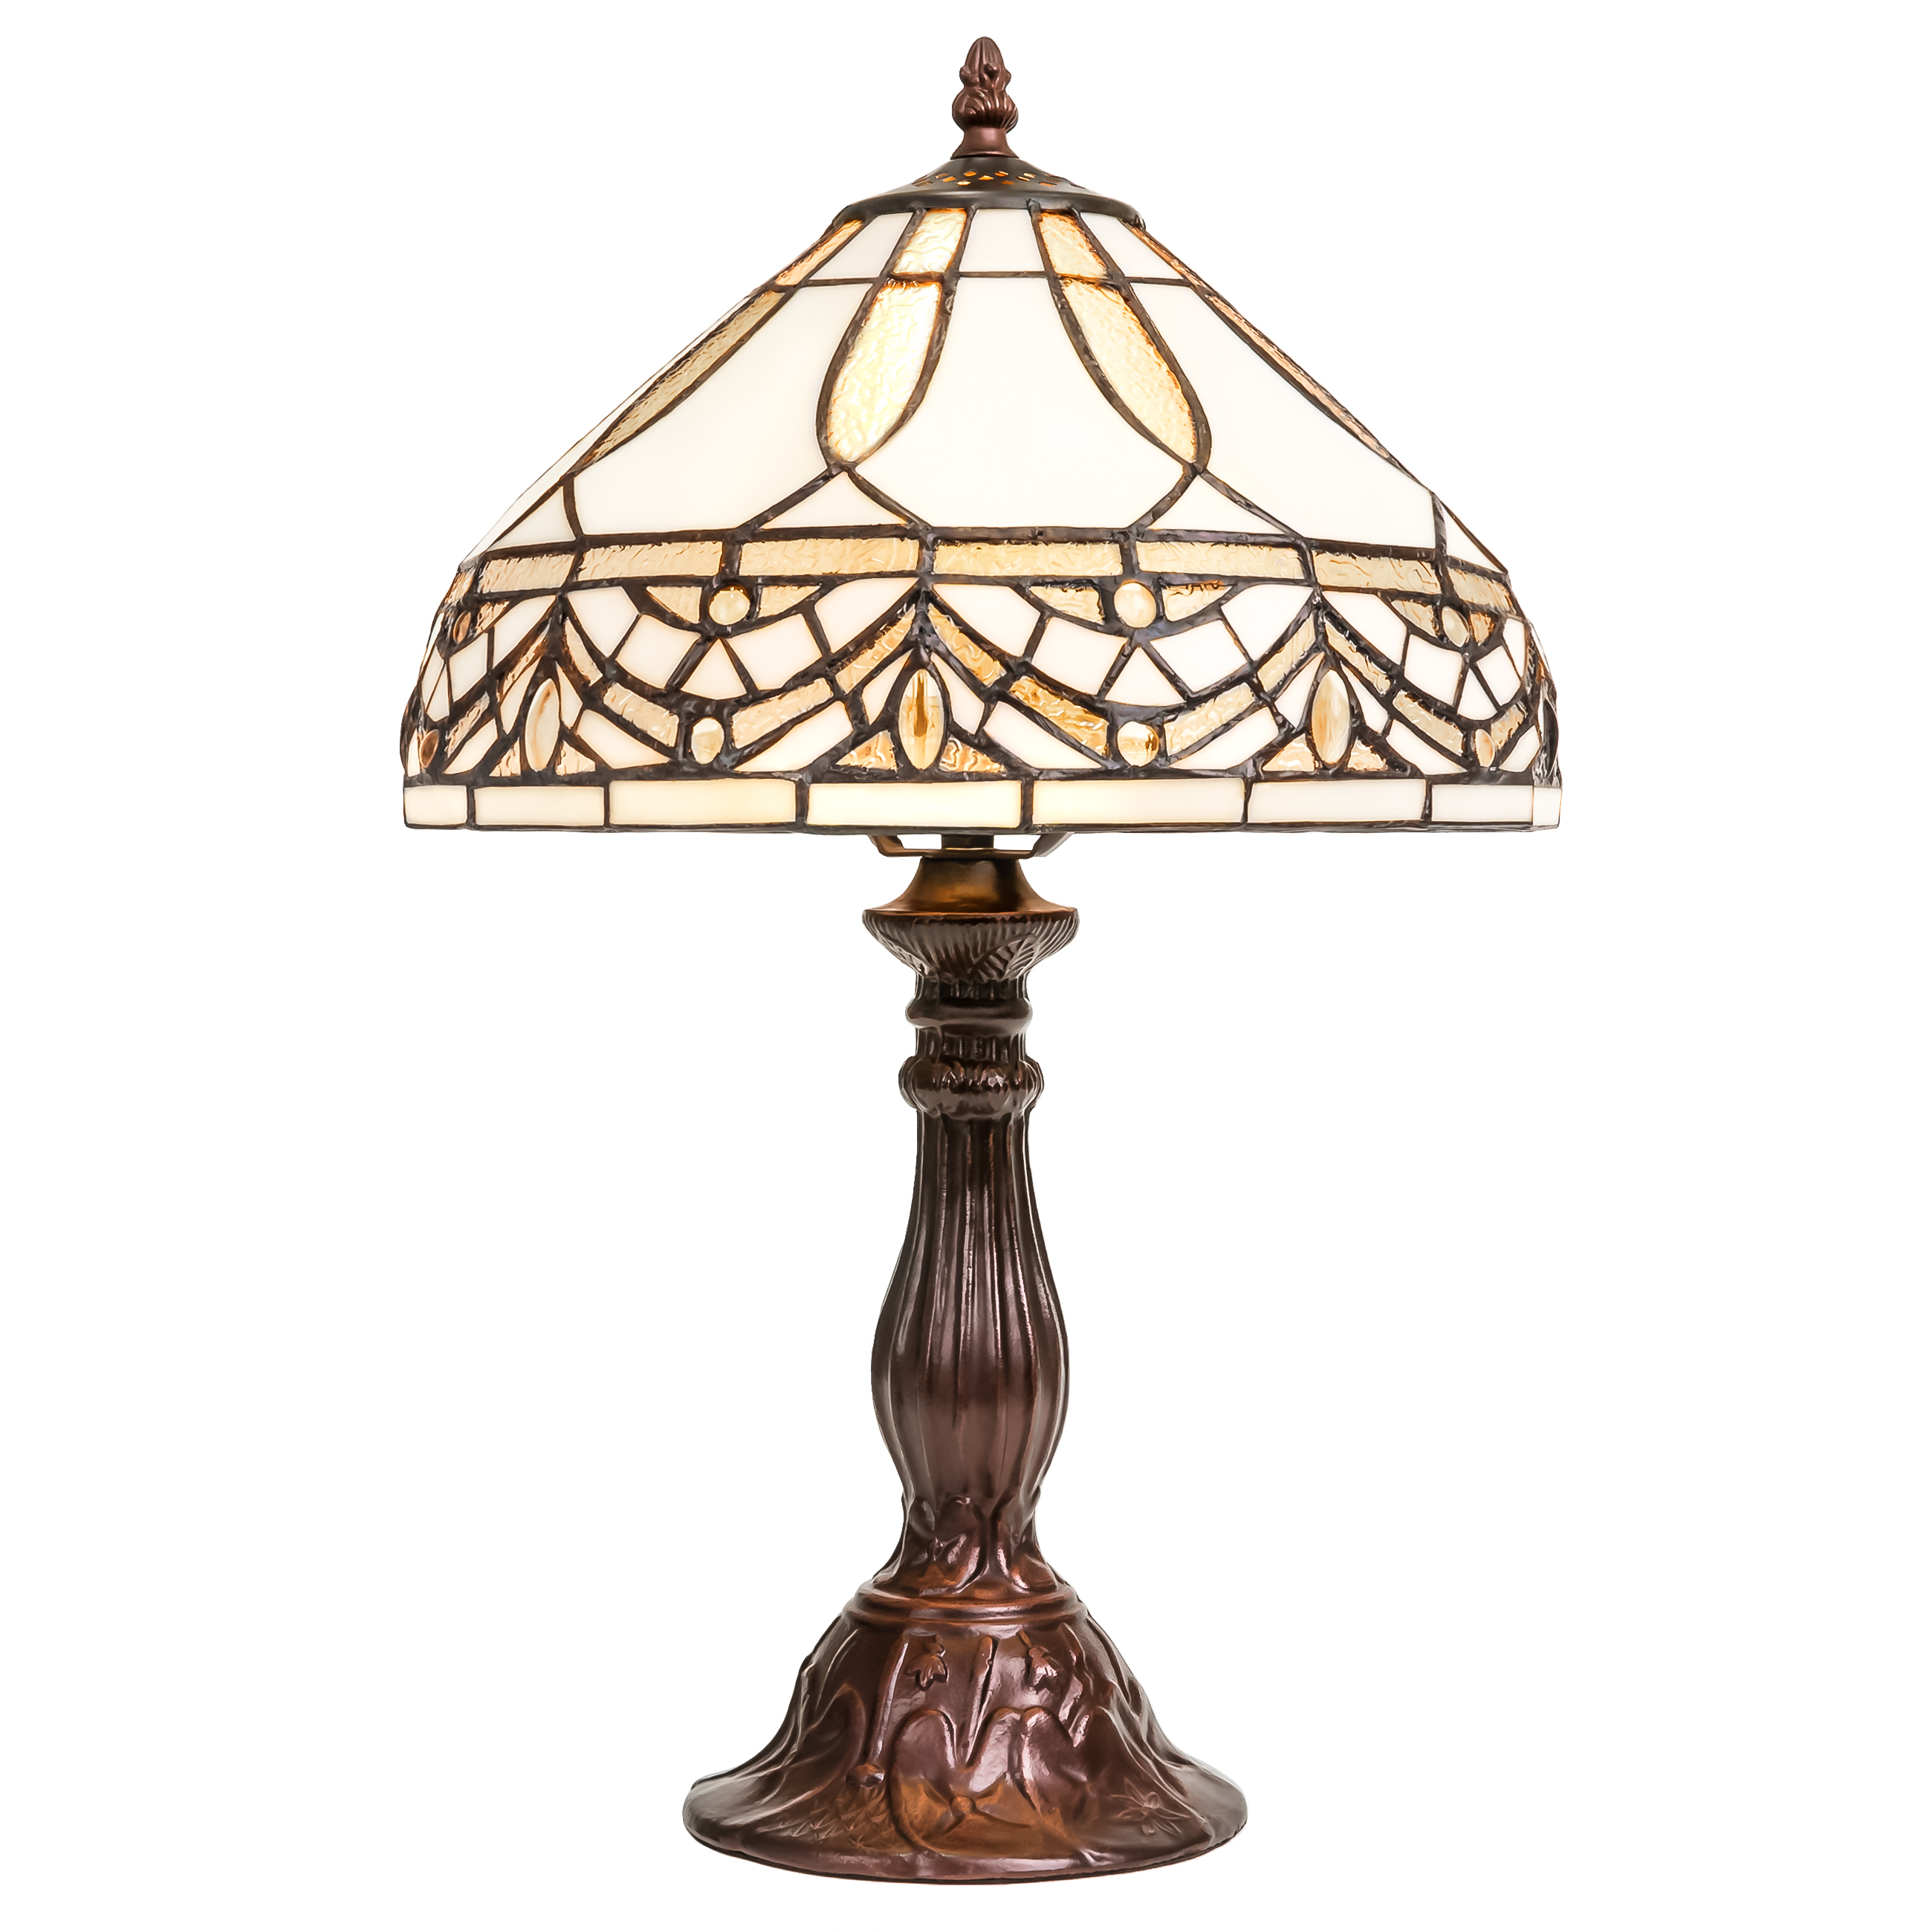 Best Choice Products Living Room Bedroom Nightstand Tiffany Style Jewel Table Lamp by Best Choice Products